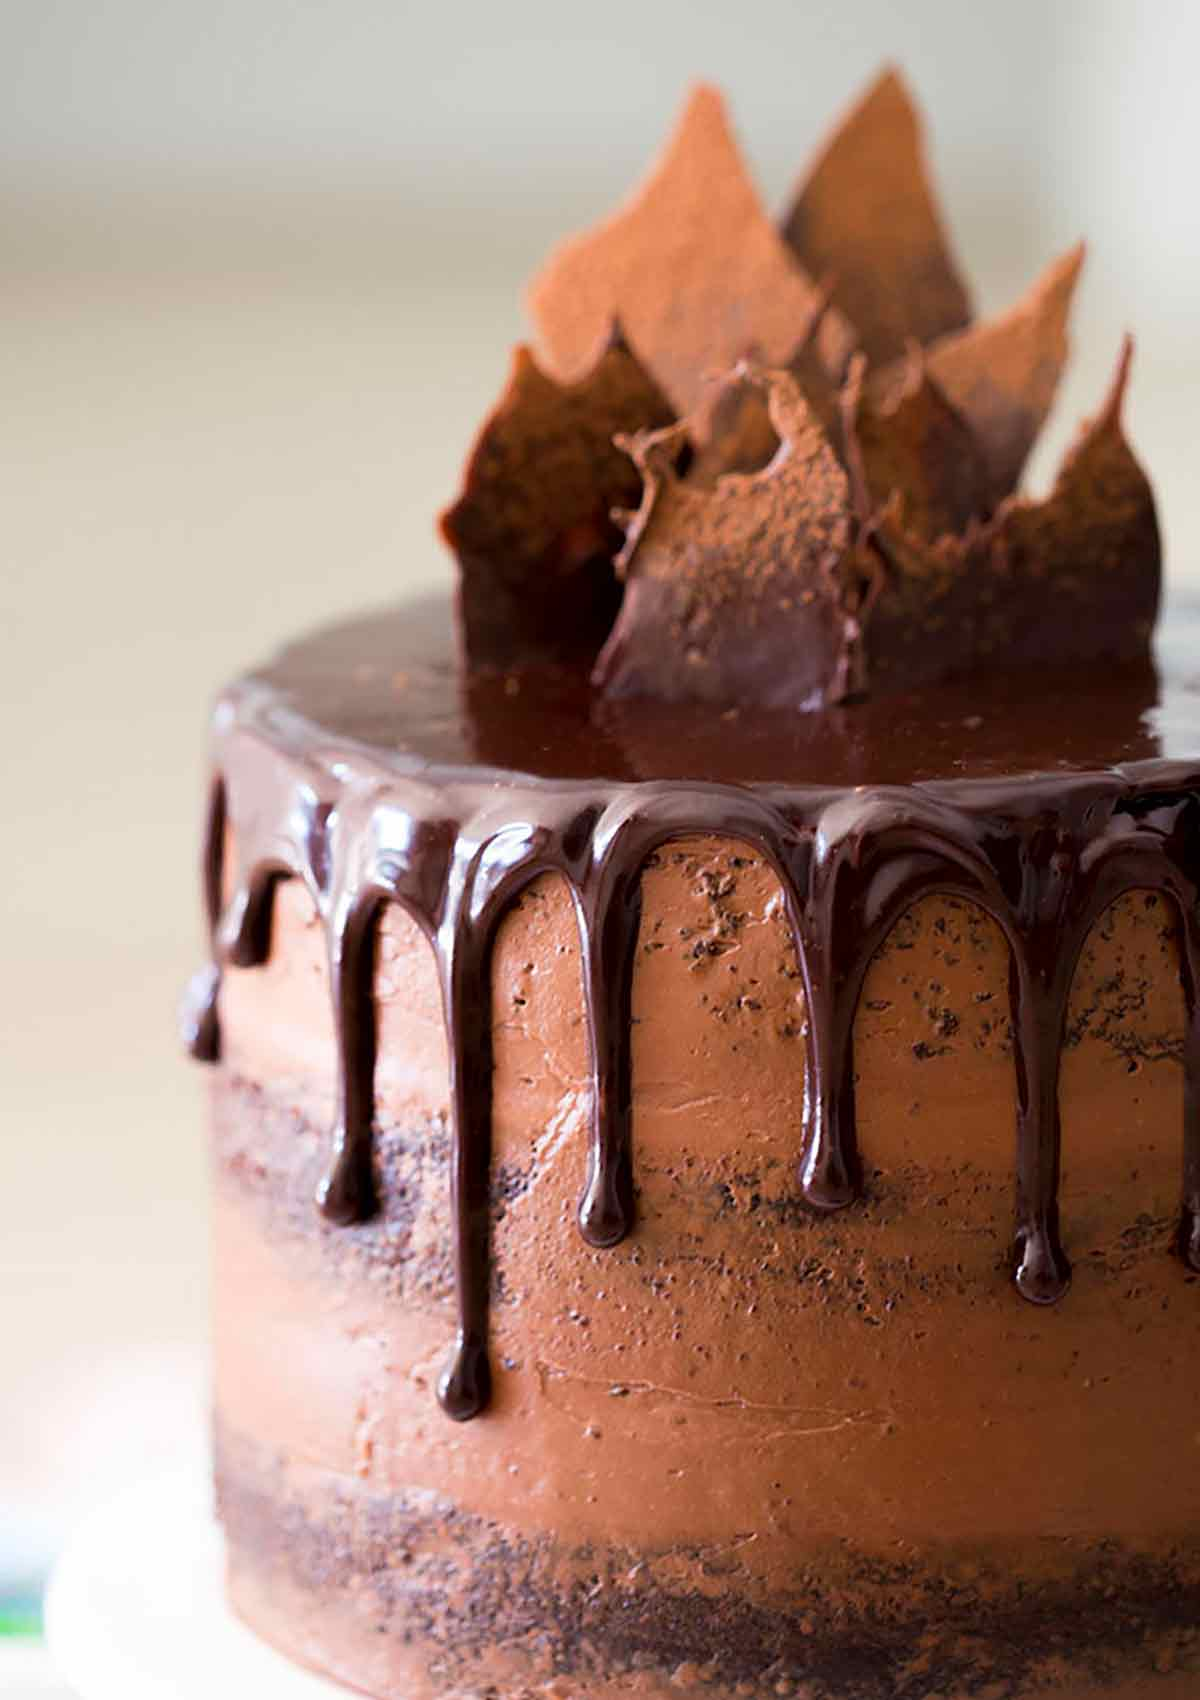 Chocolate zucchini cake with chocolate dripping over the top.